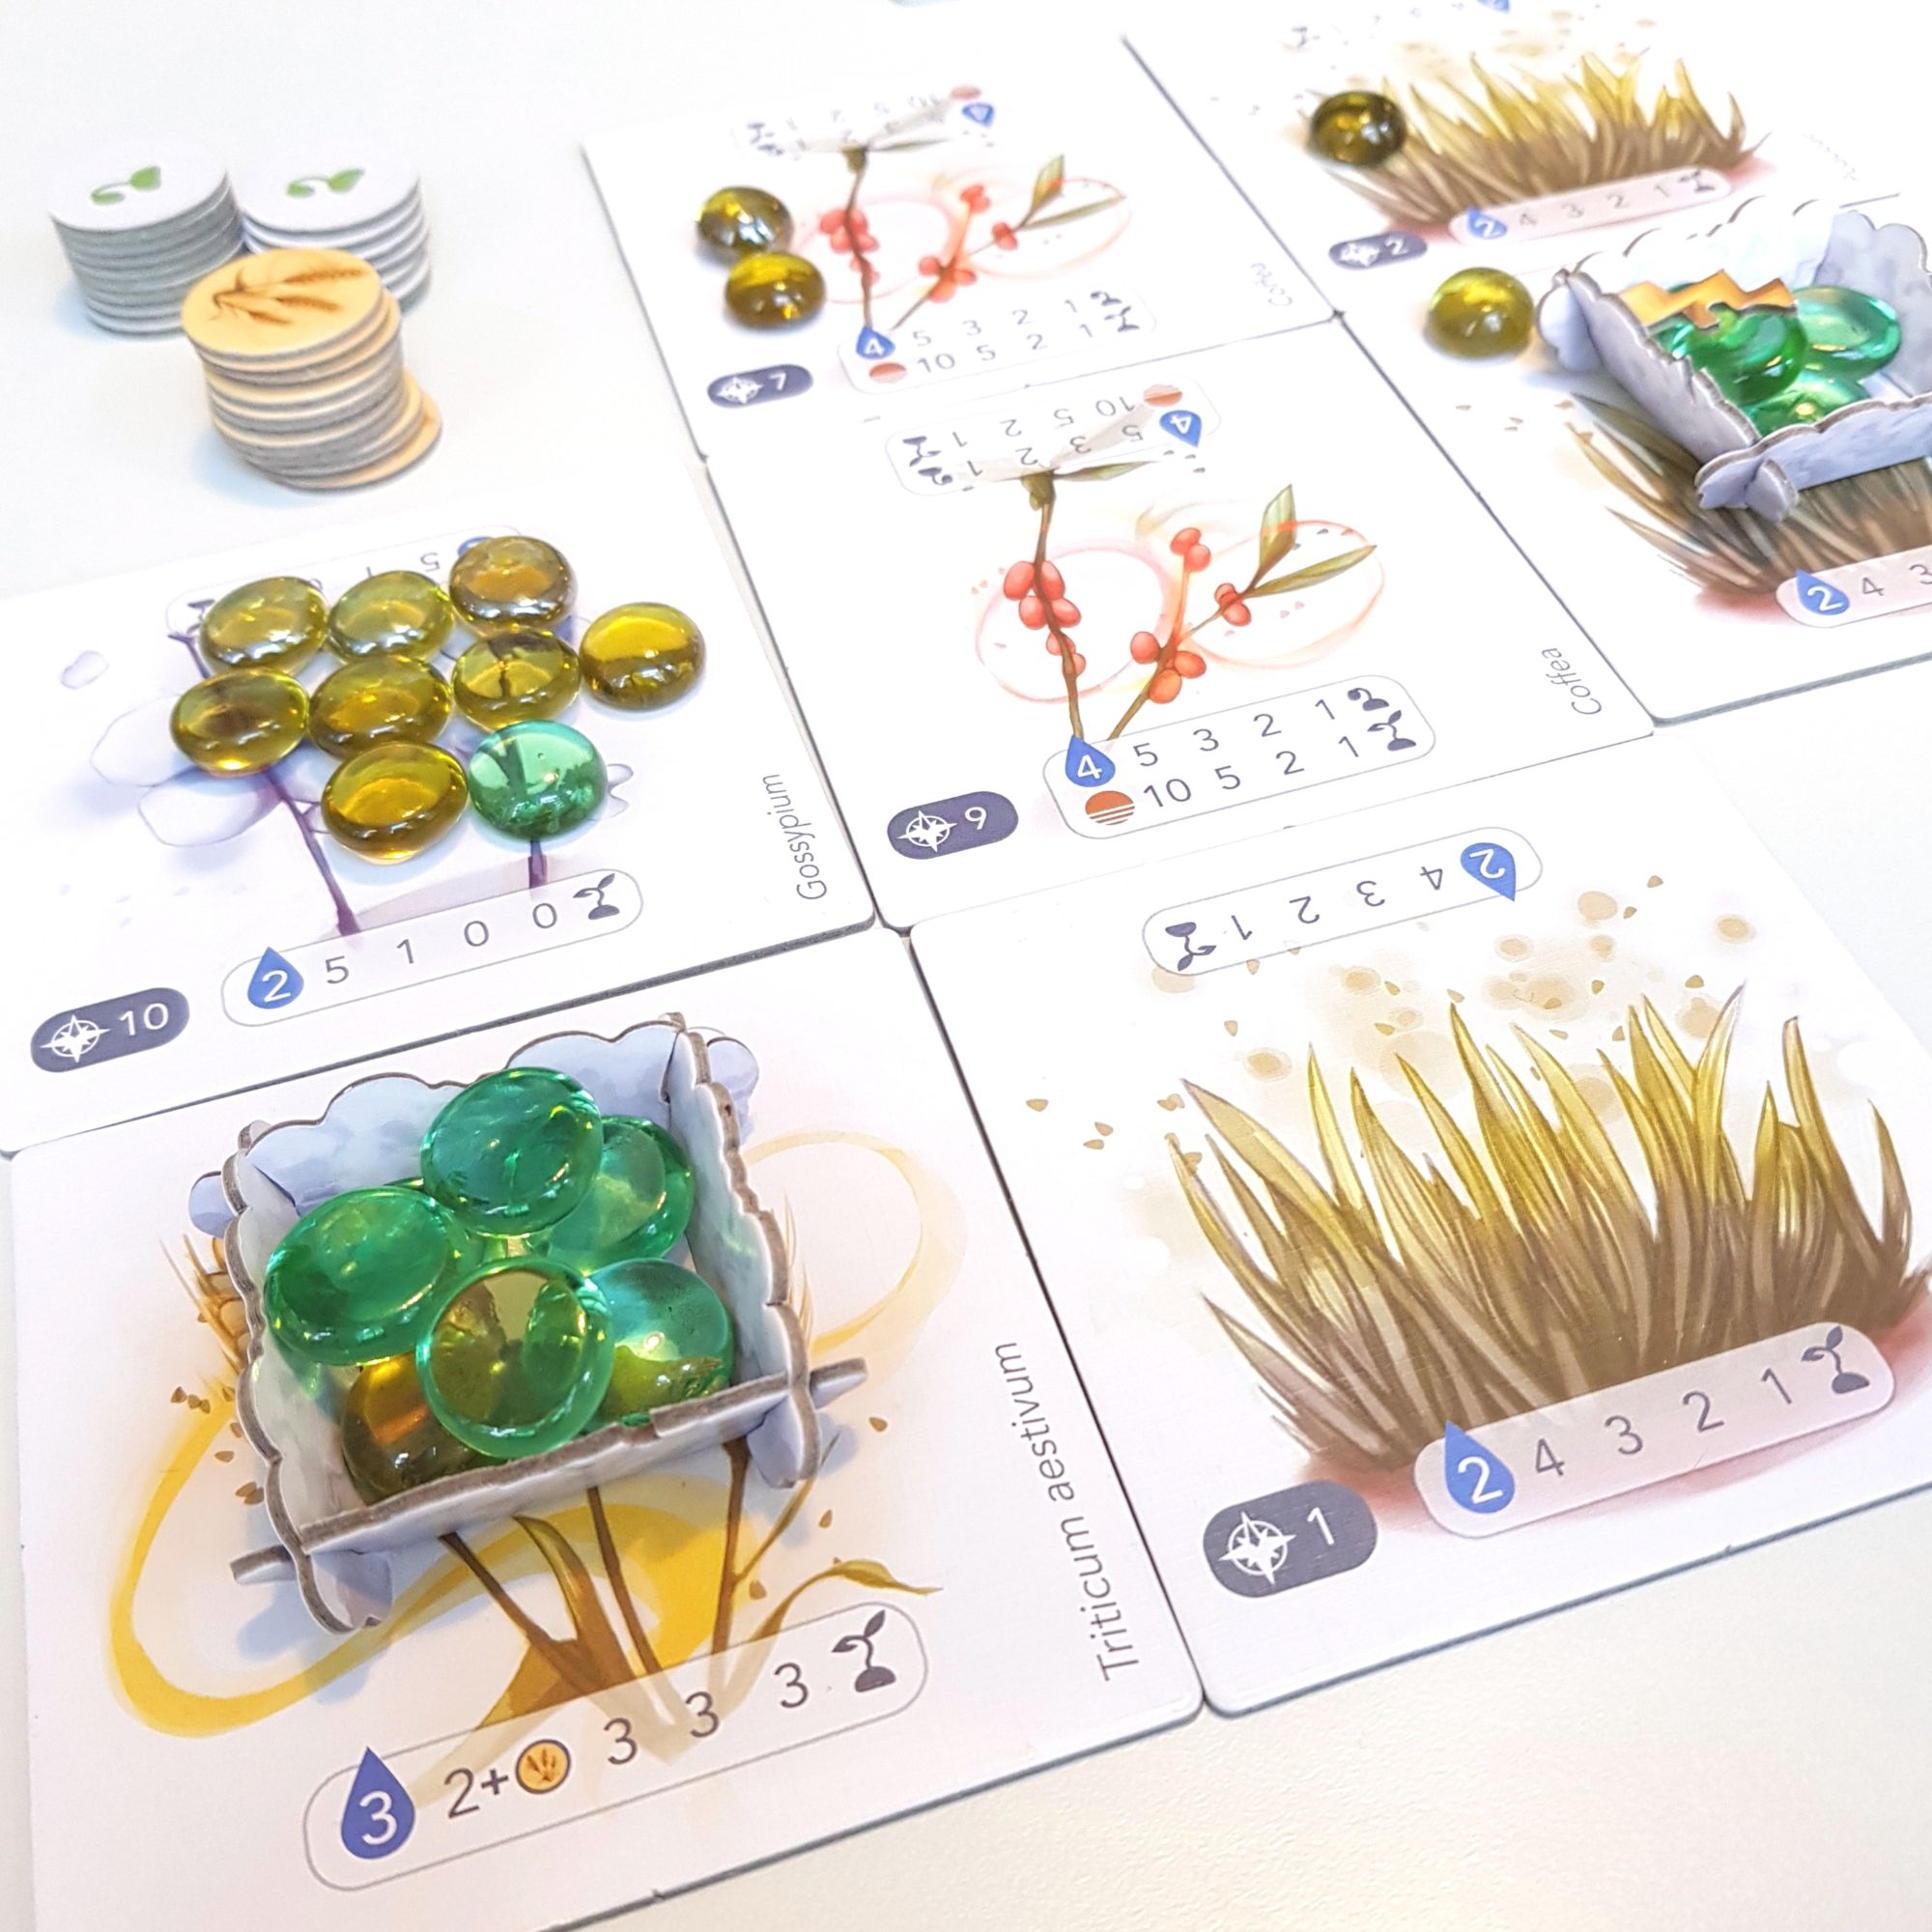 Petrichor Board Game